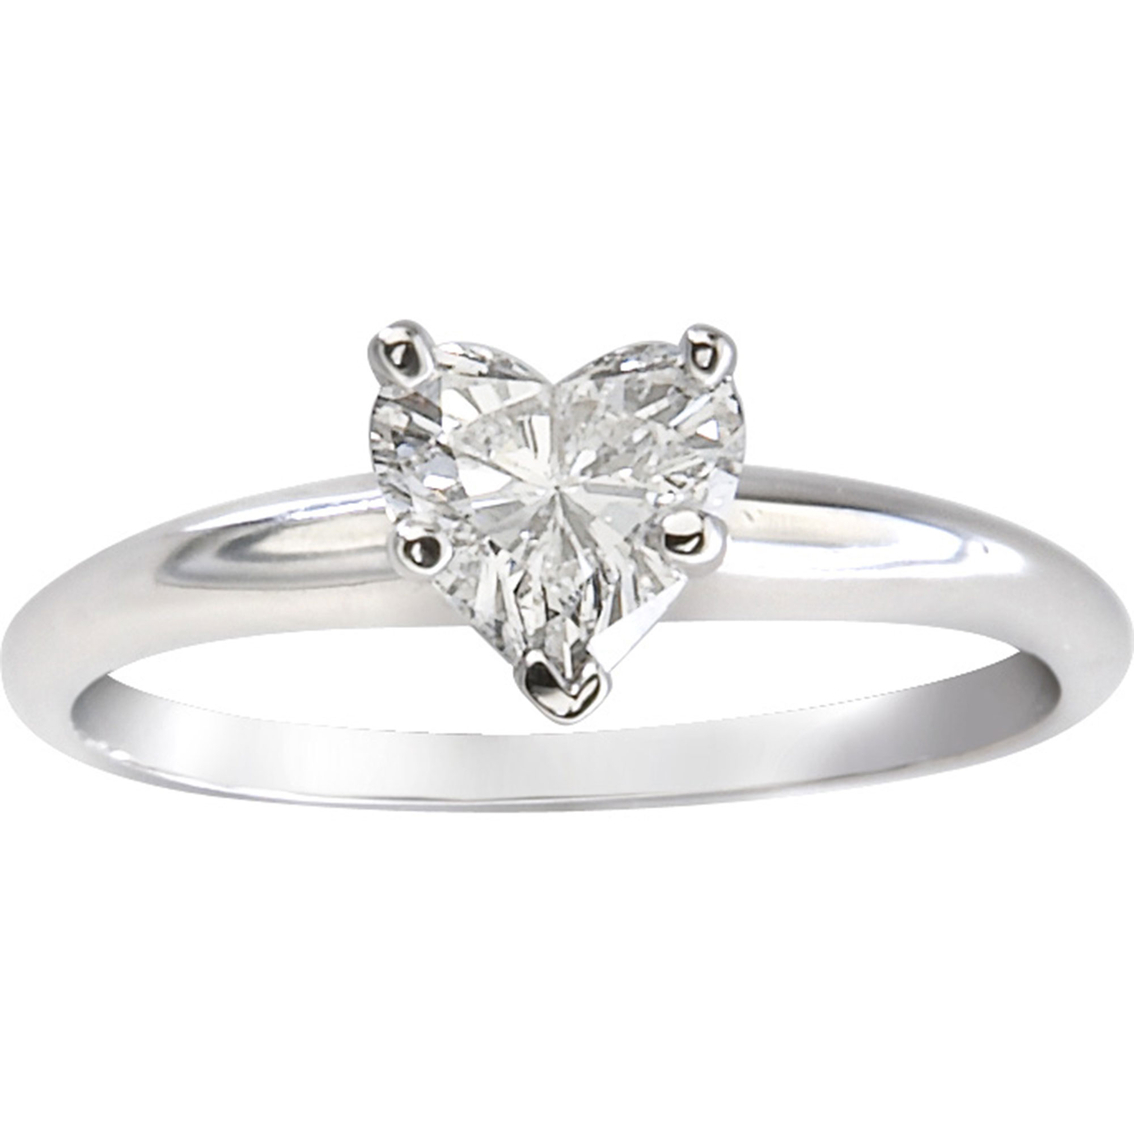 14k white gold 1 2 ct heart shaped solitaire diamond ring. Black Bedroom Furniture Sets. Home Design Ideas